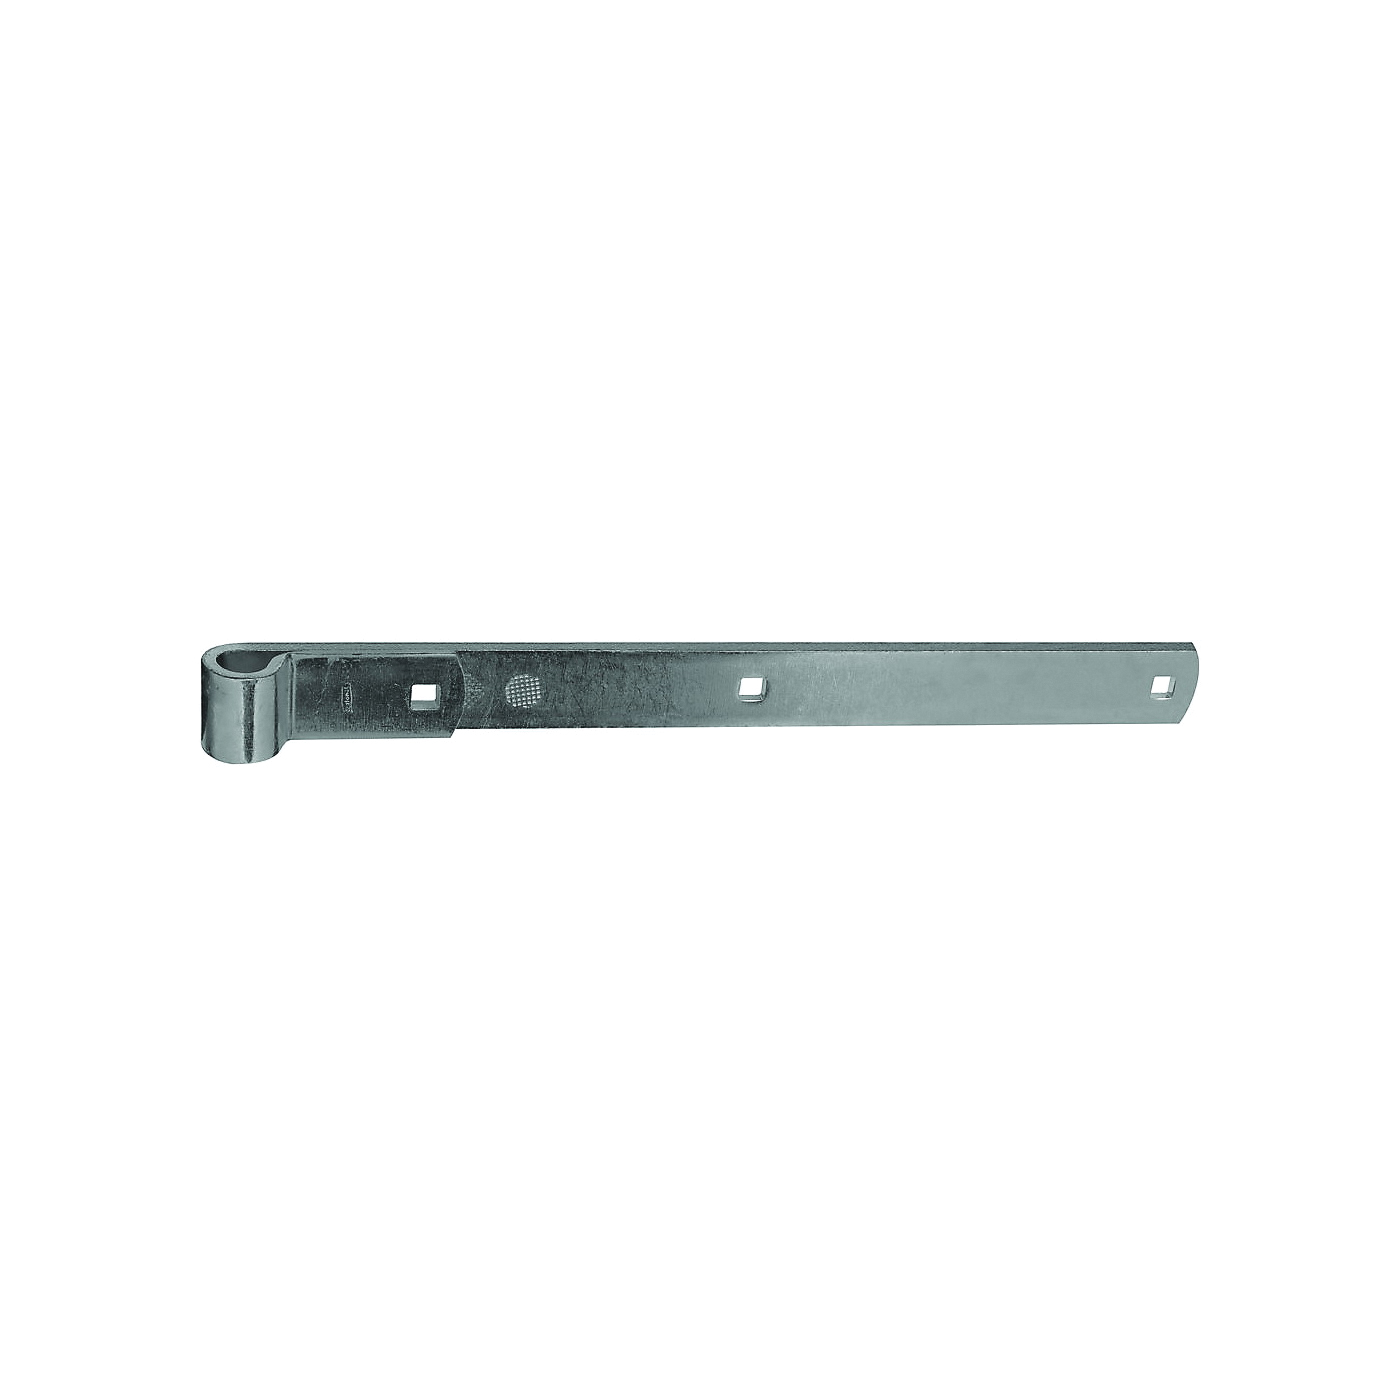 Picture of National Hardware 168336 Strap Hinge, 1/4 in Thick Leaf, Steel, Zinc, 200 lb